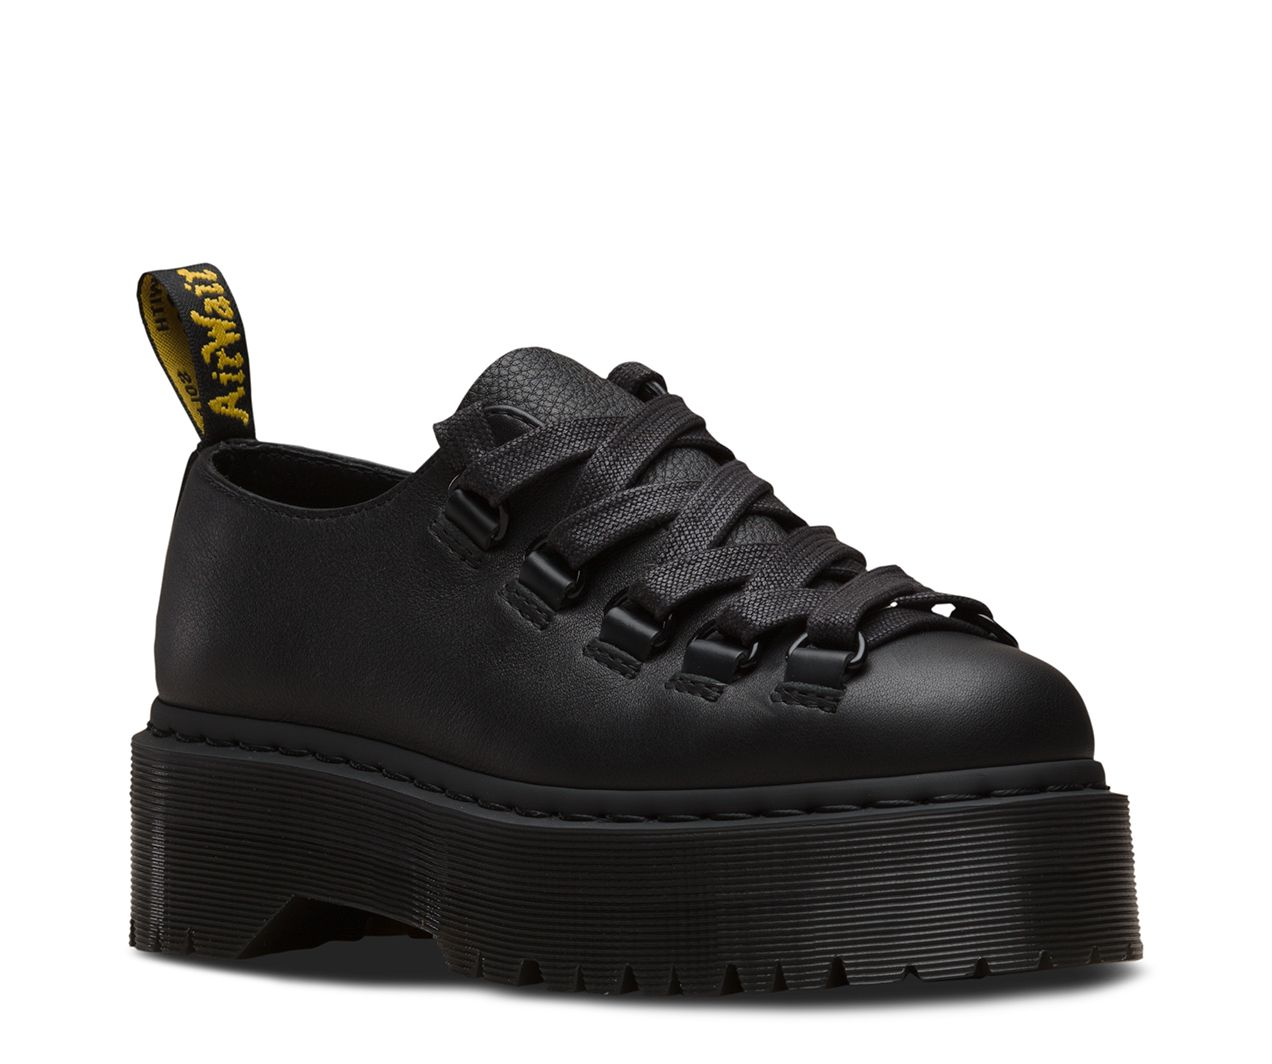 Bottines femme à lacets bout rond Plate-forme Casual Talon Compensé creepers Baskets Chaussures Taille